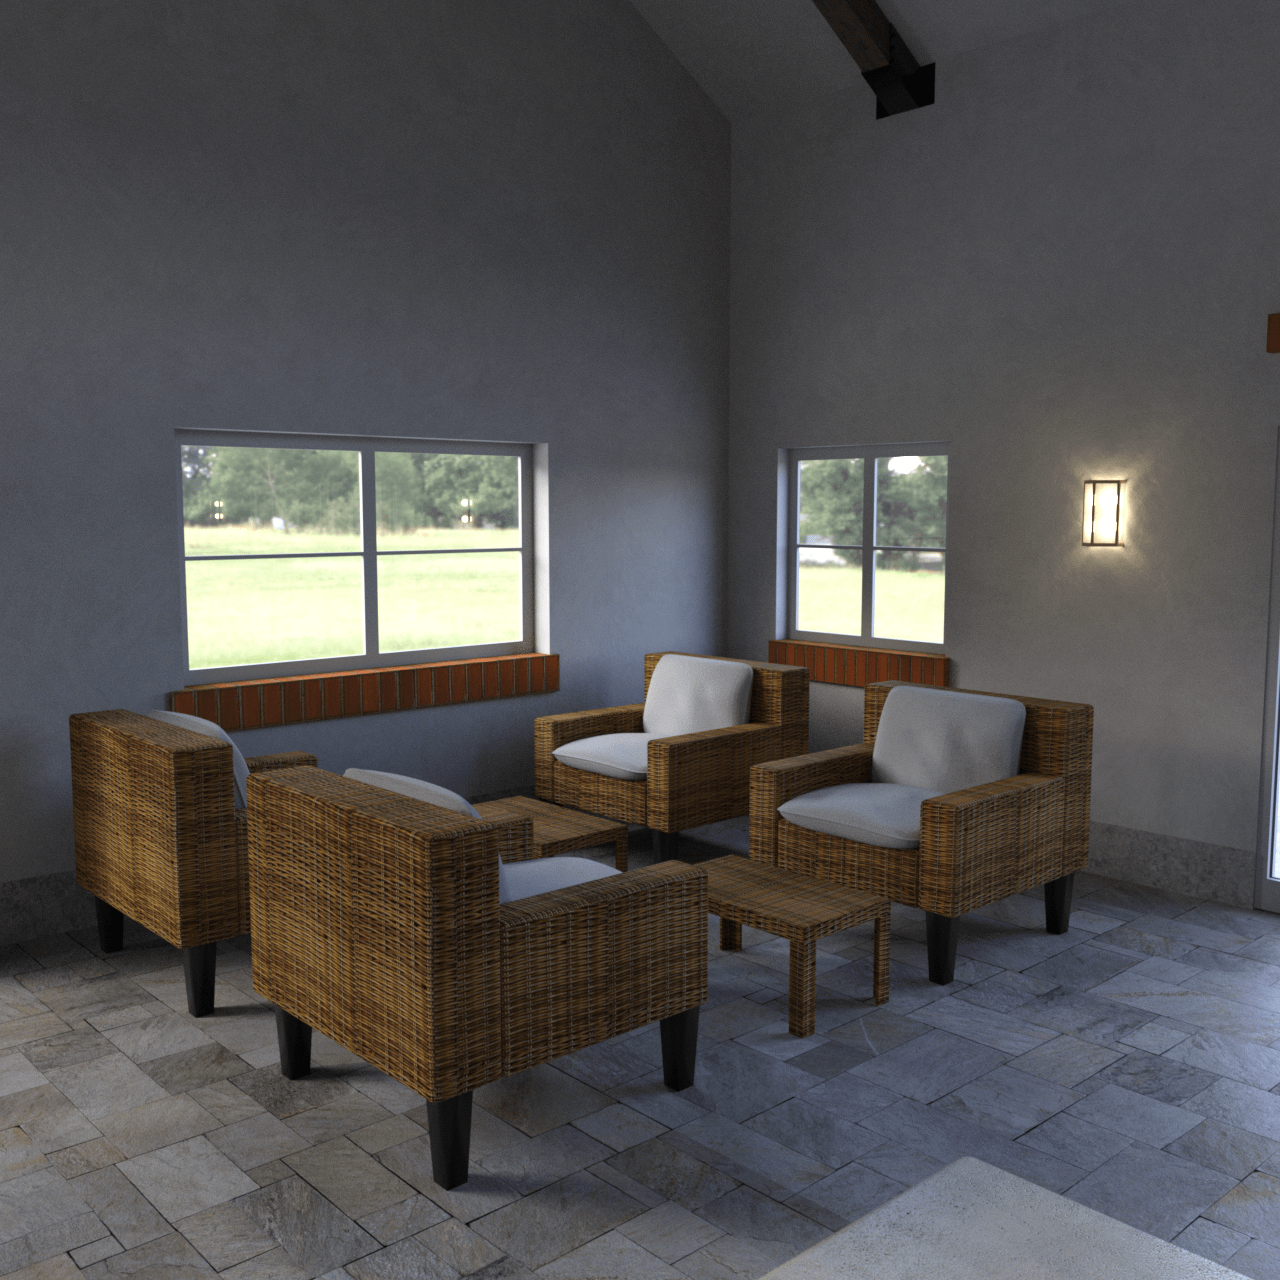 3d models of furnitures used in the pool house